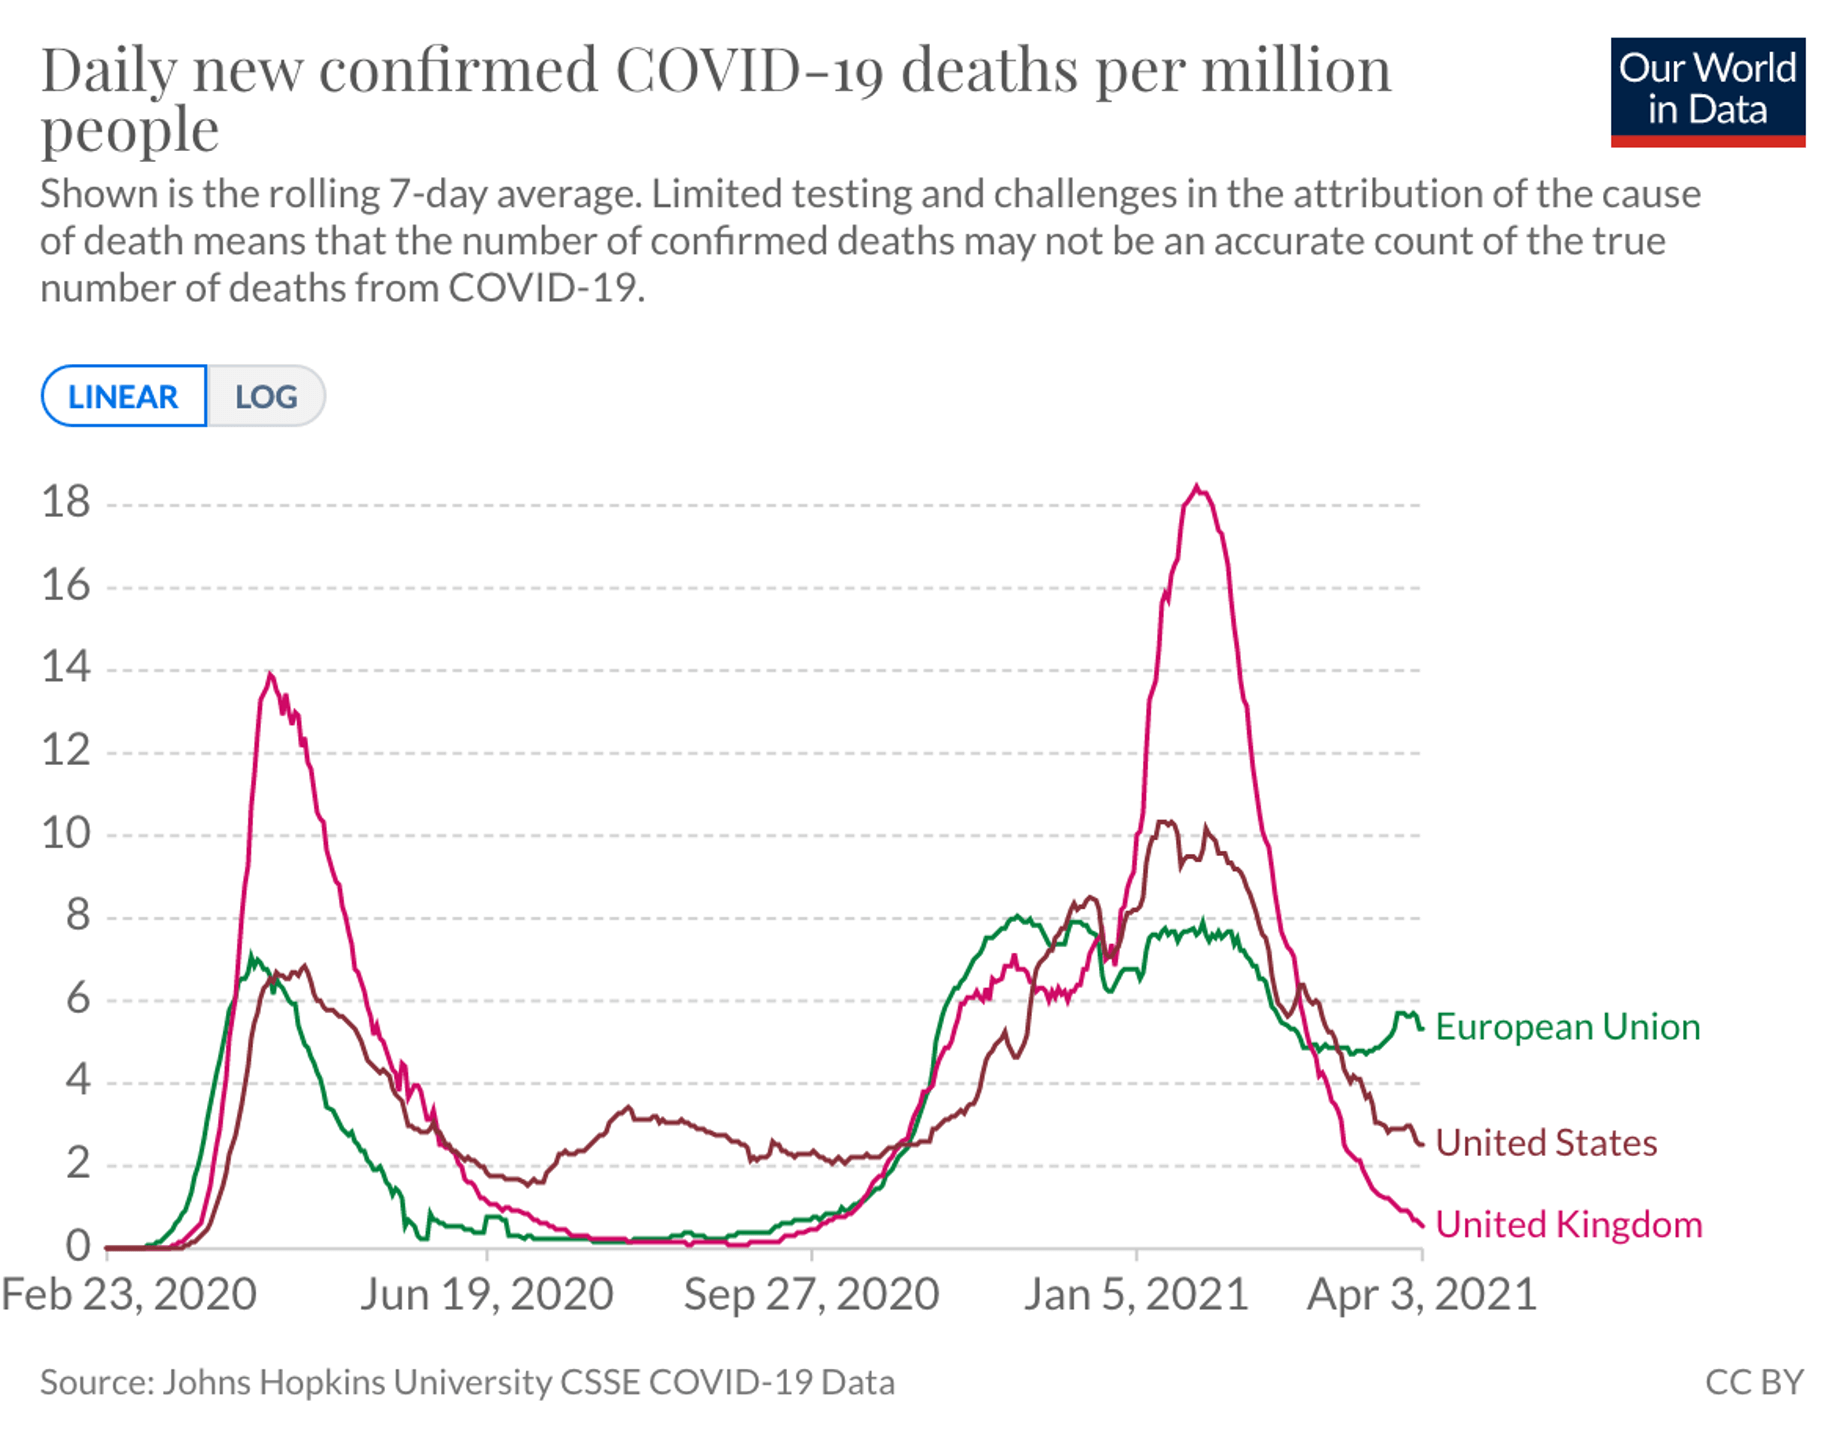 Daily new confirmed COVID-19 deaths per million poeple